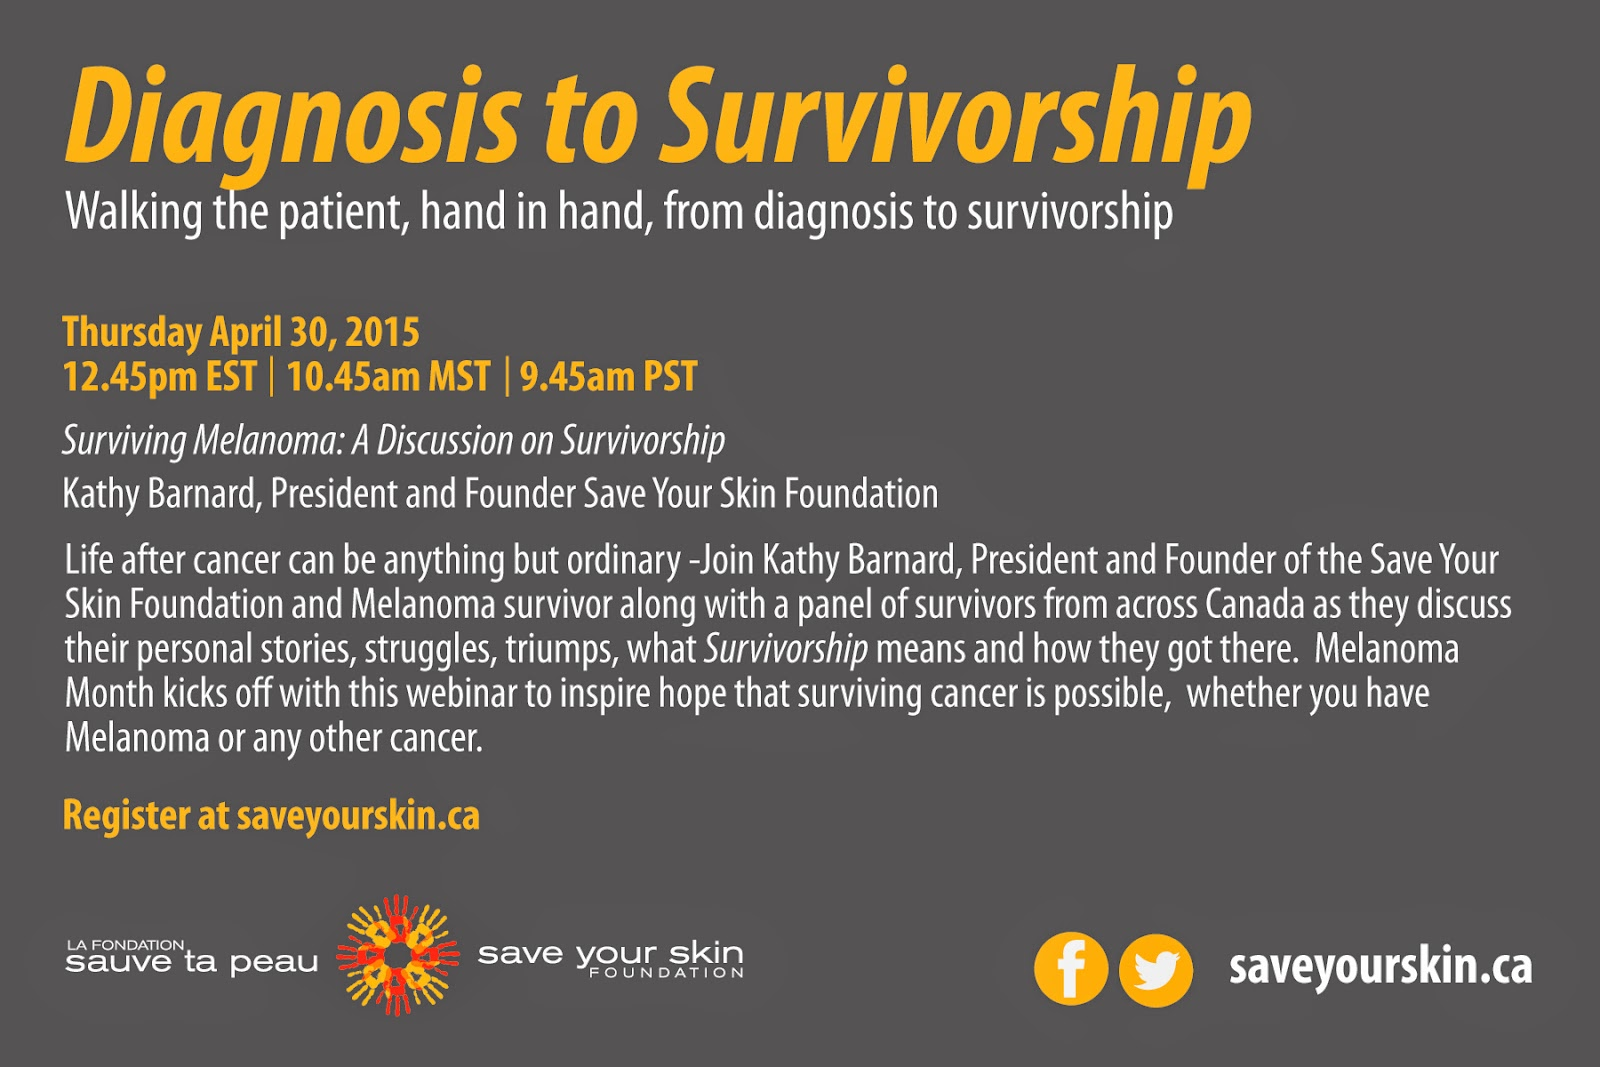 http://www.saveyourskin.ca/support-resources/webinars-and-video-resources/